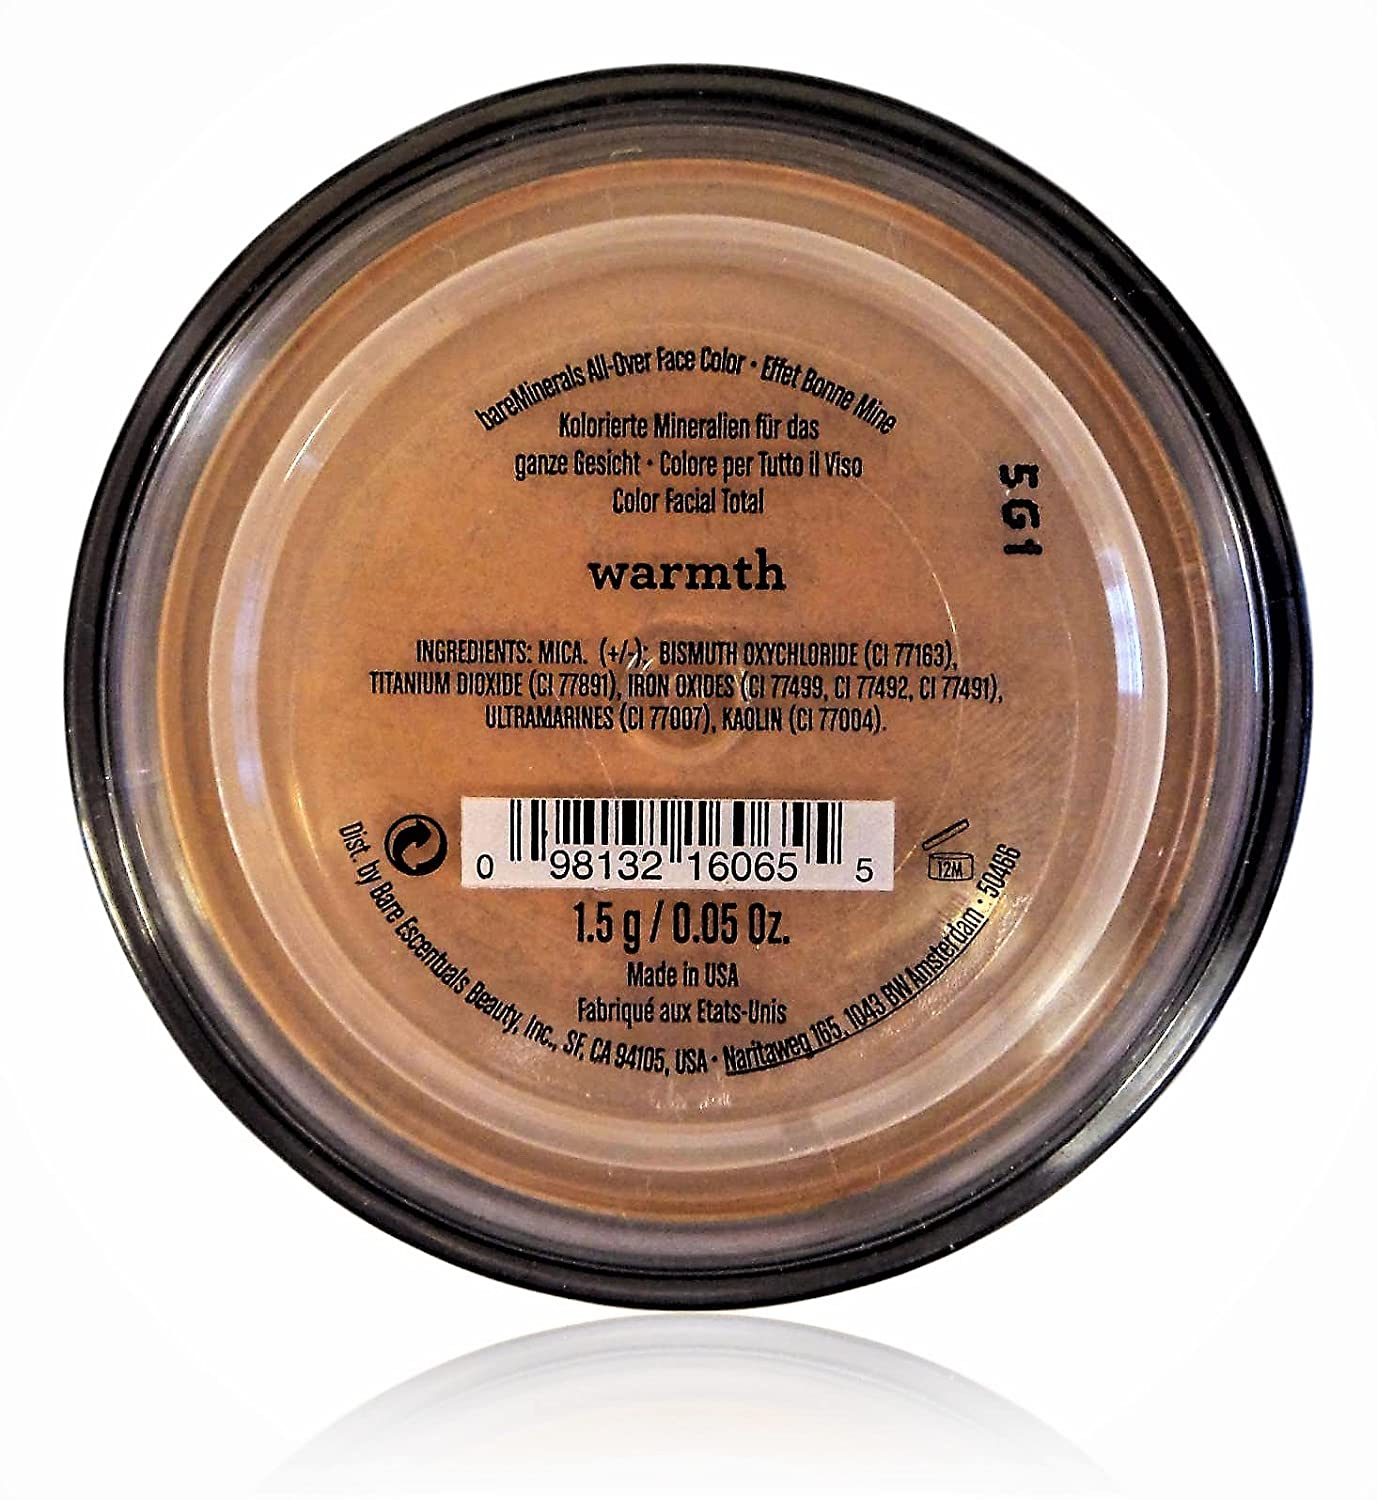 Bare Escentuals bareMinerals - All Over Face Color - Warmth